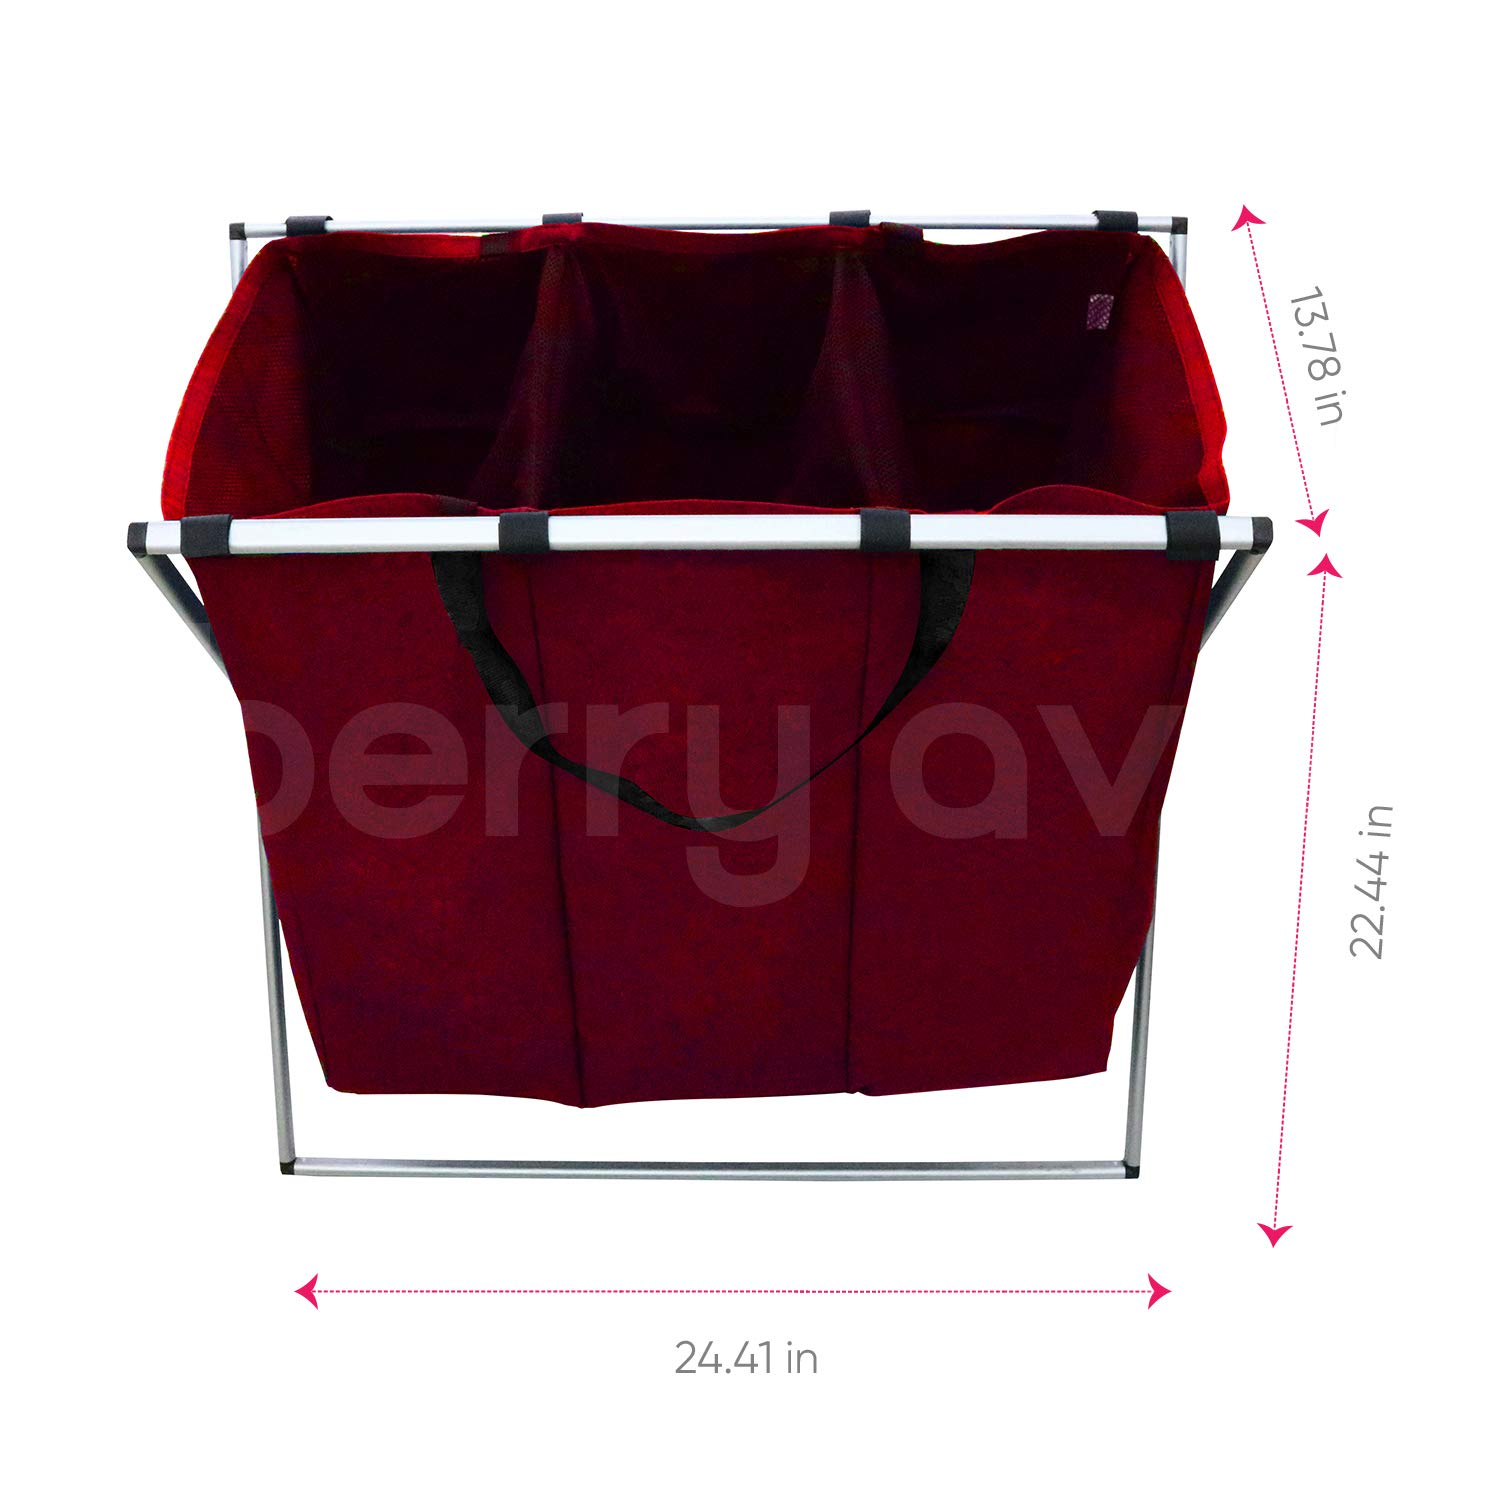 Home and College Use Dark, Light, Color Tall Tri-Part Bin Dirty Clothes Organizer for Kids Grey Smart Rolling Design Berry Ave Tri-Part Laundry Basket Hamper Adults